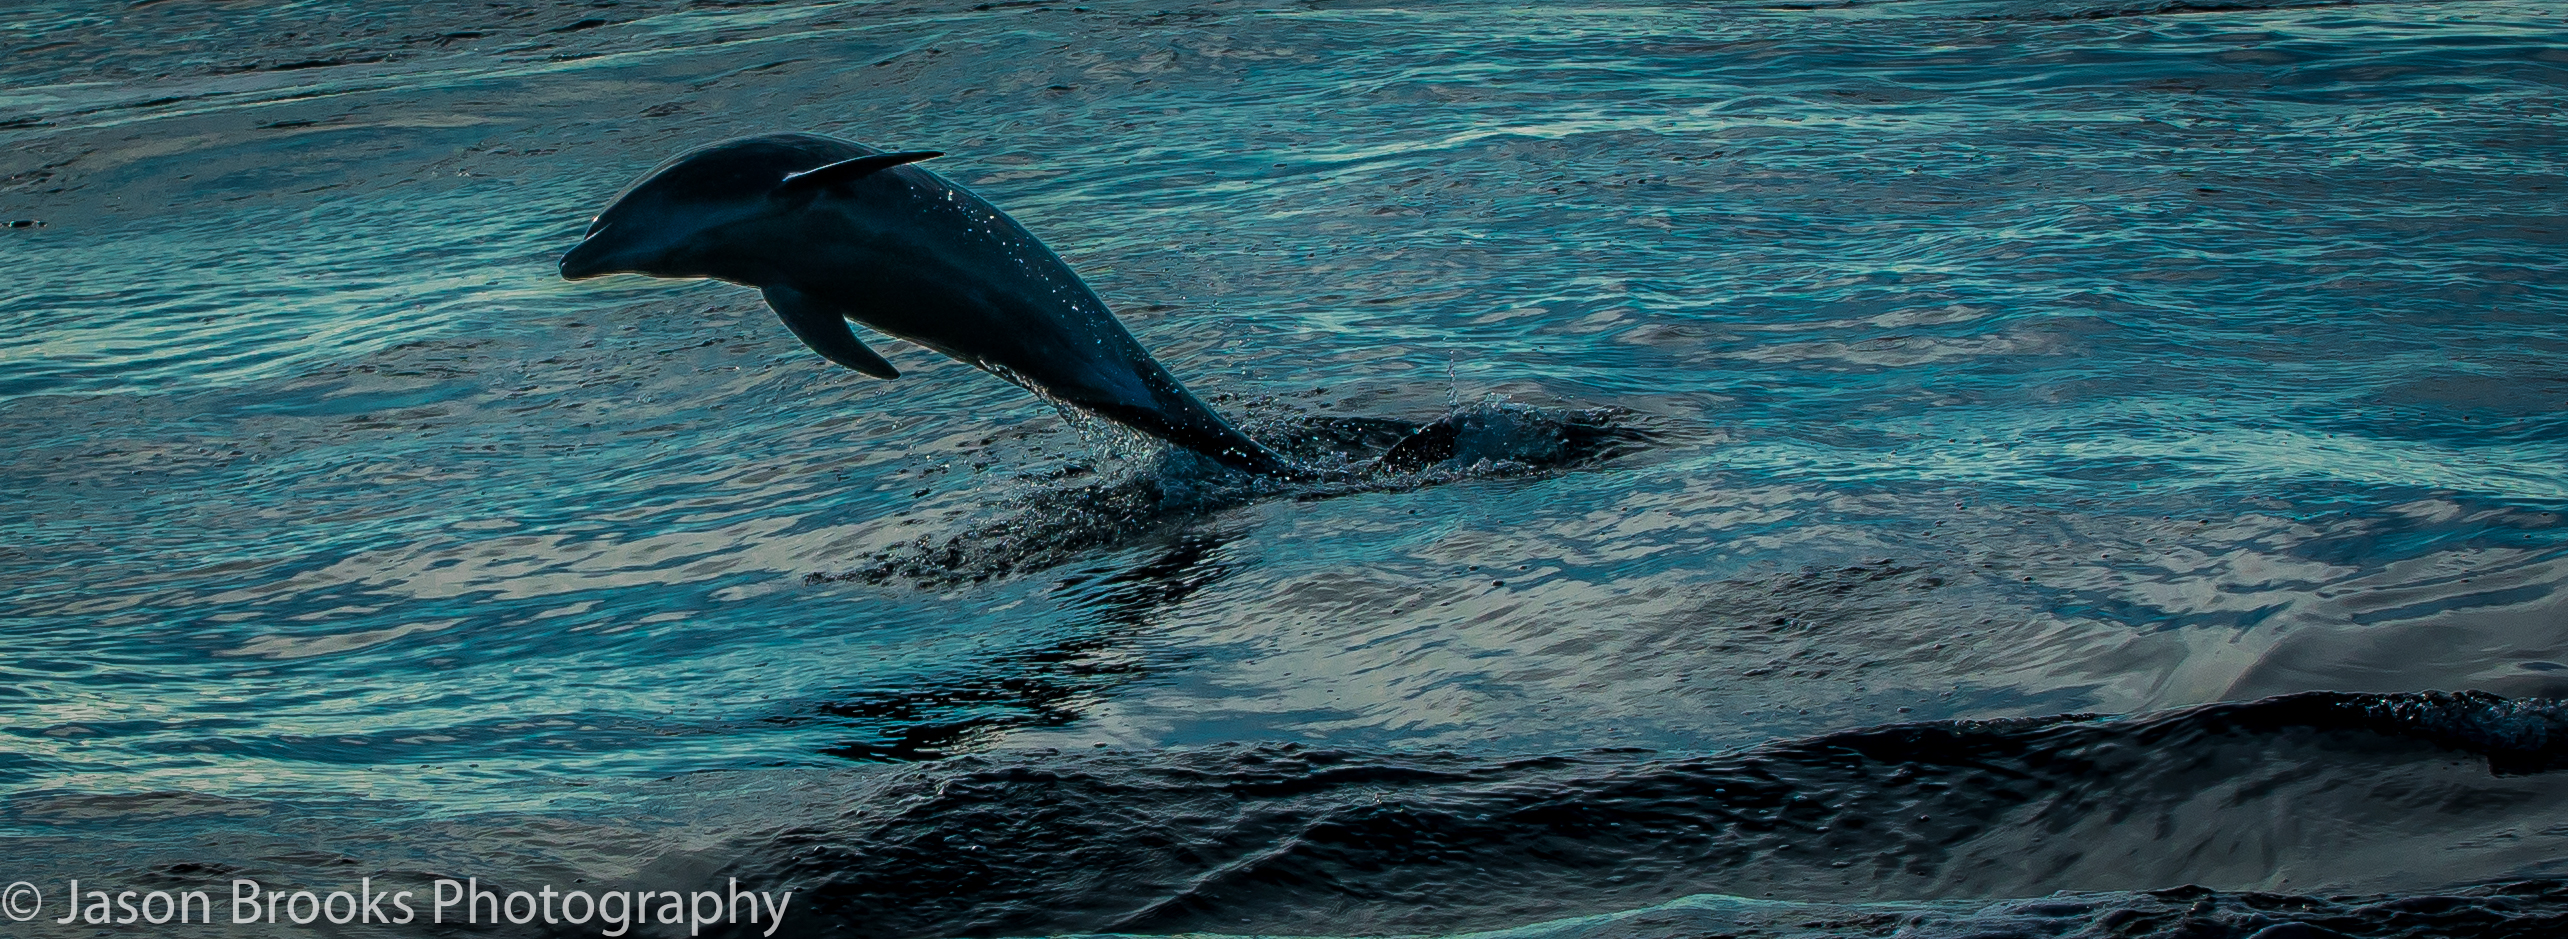 Dolphins often race alongside the boat on the way to the fishing grounds-Jason Brooks